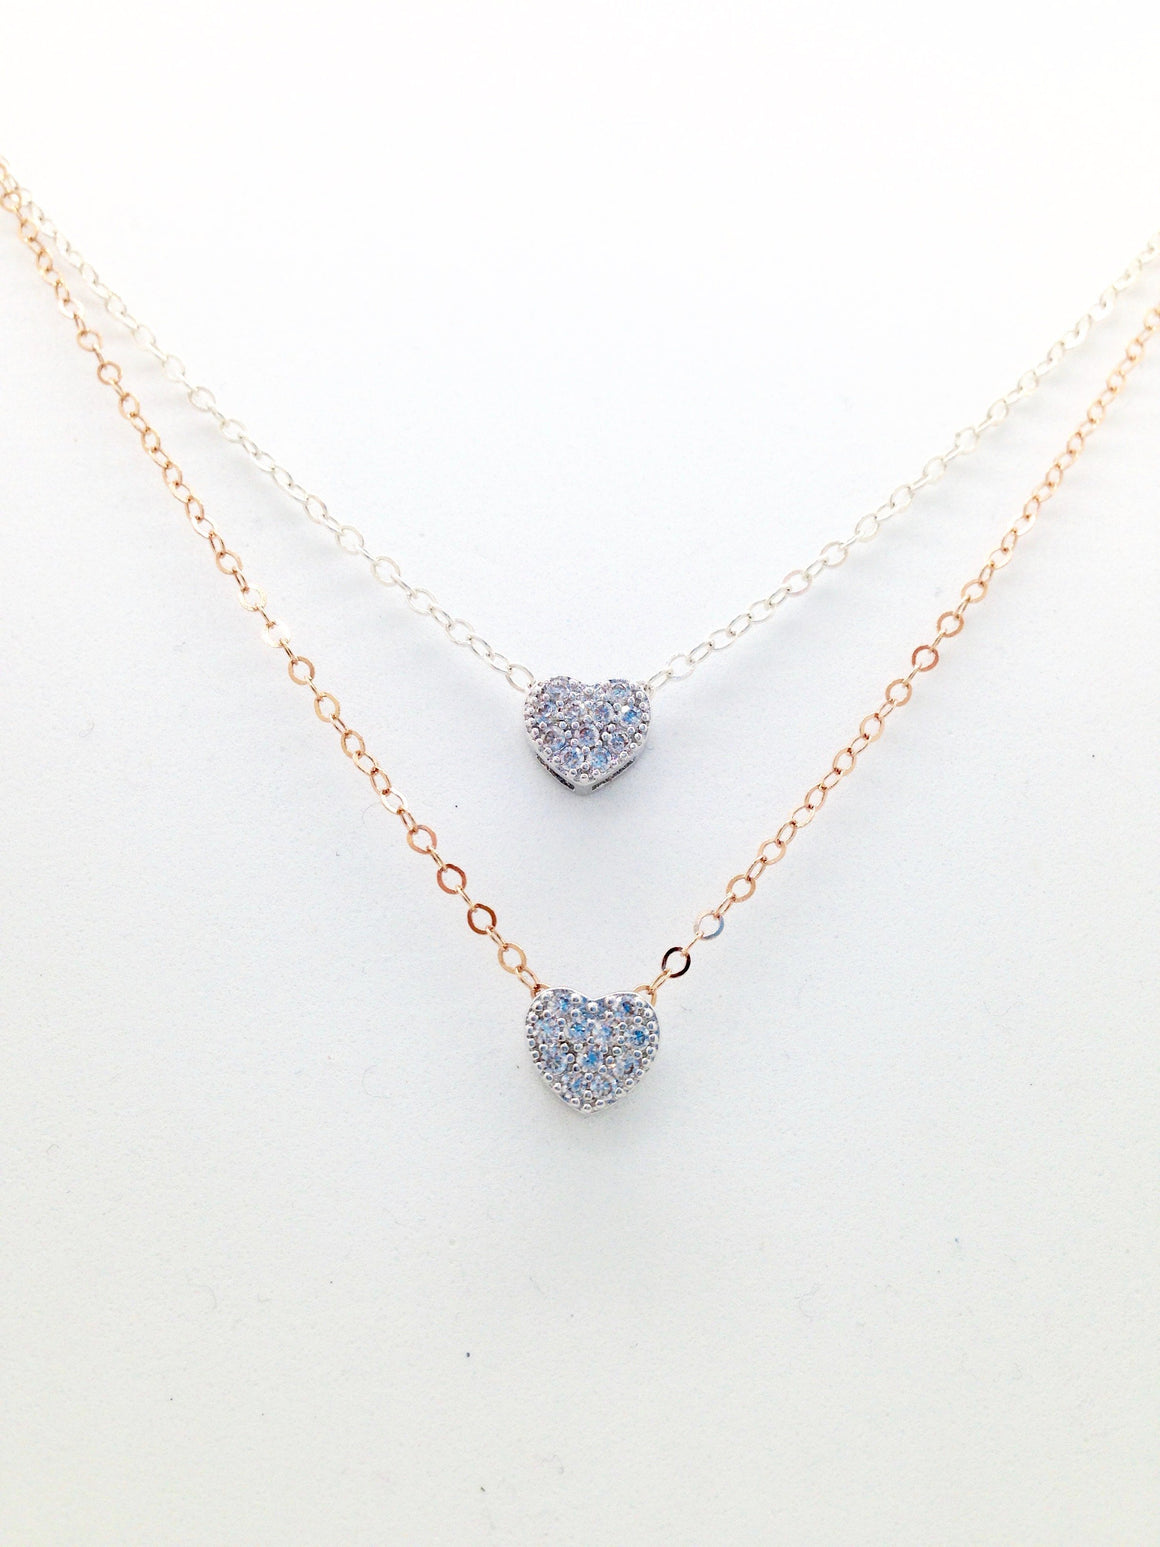 The Shiny Heart Necklace